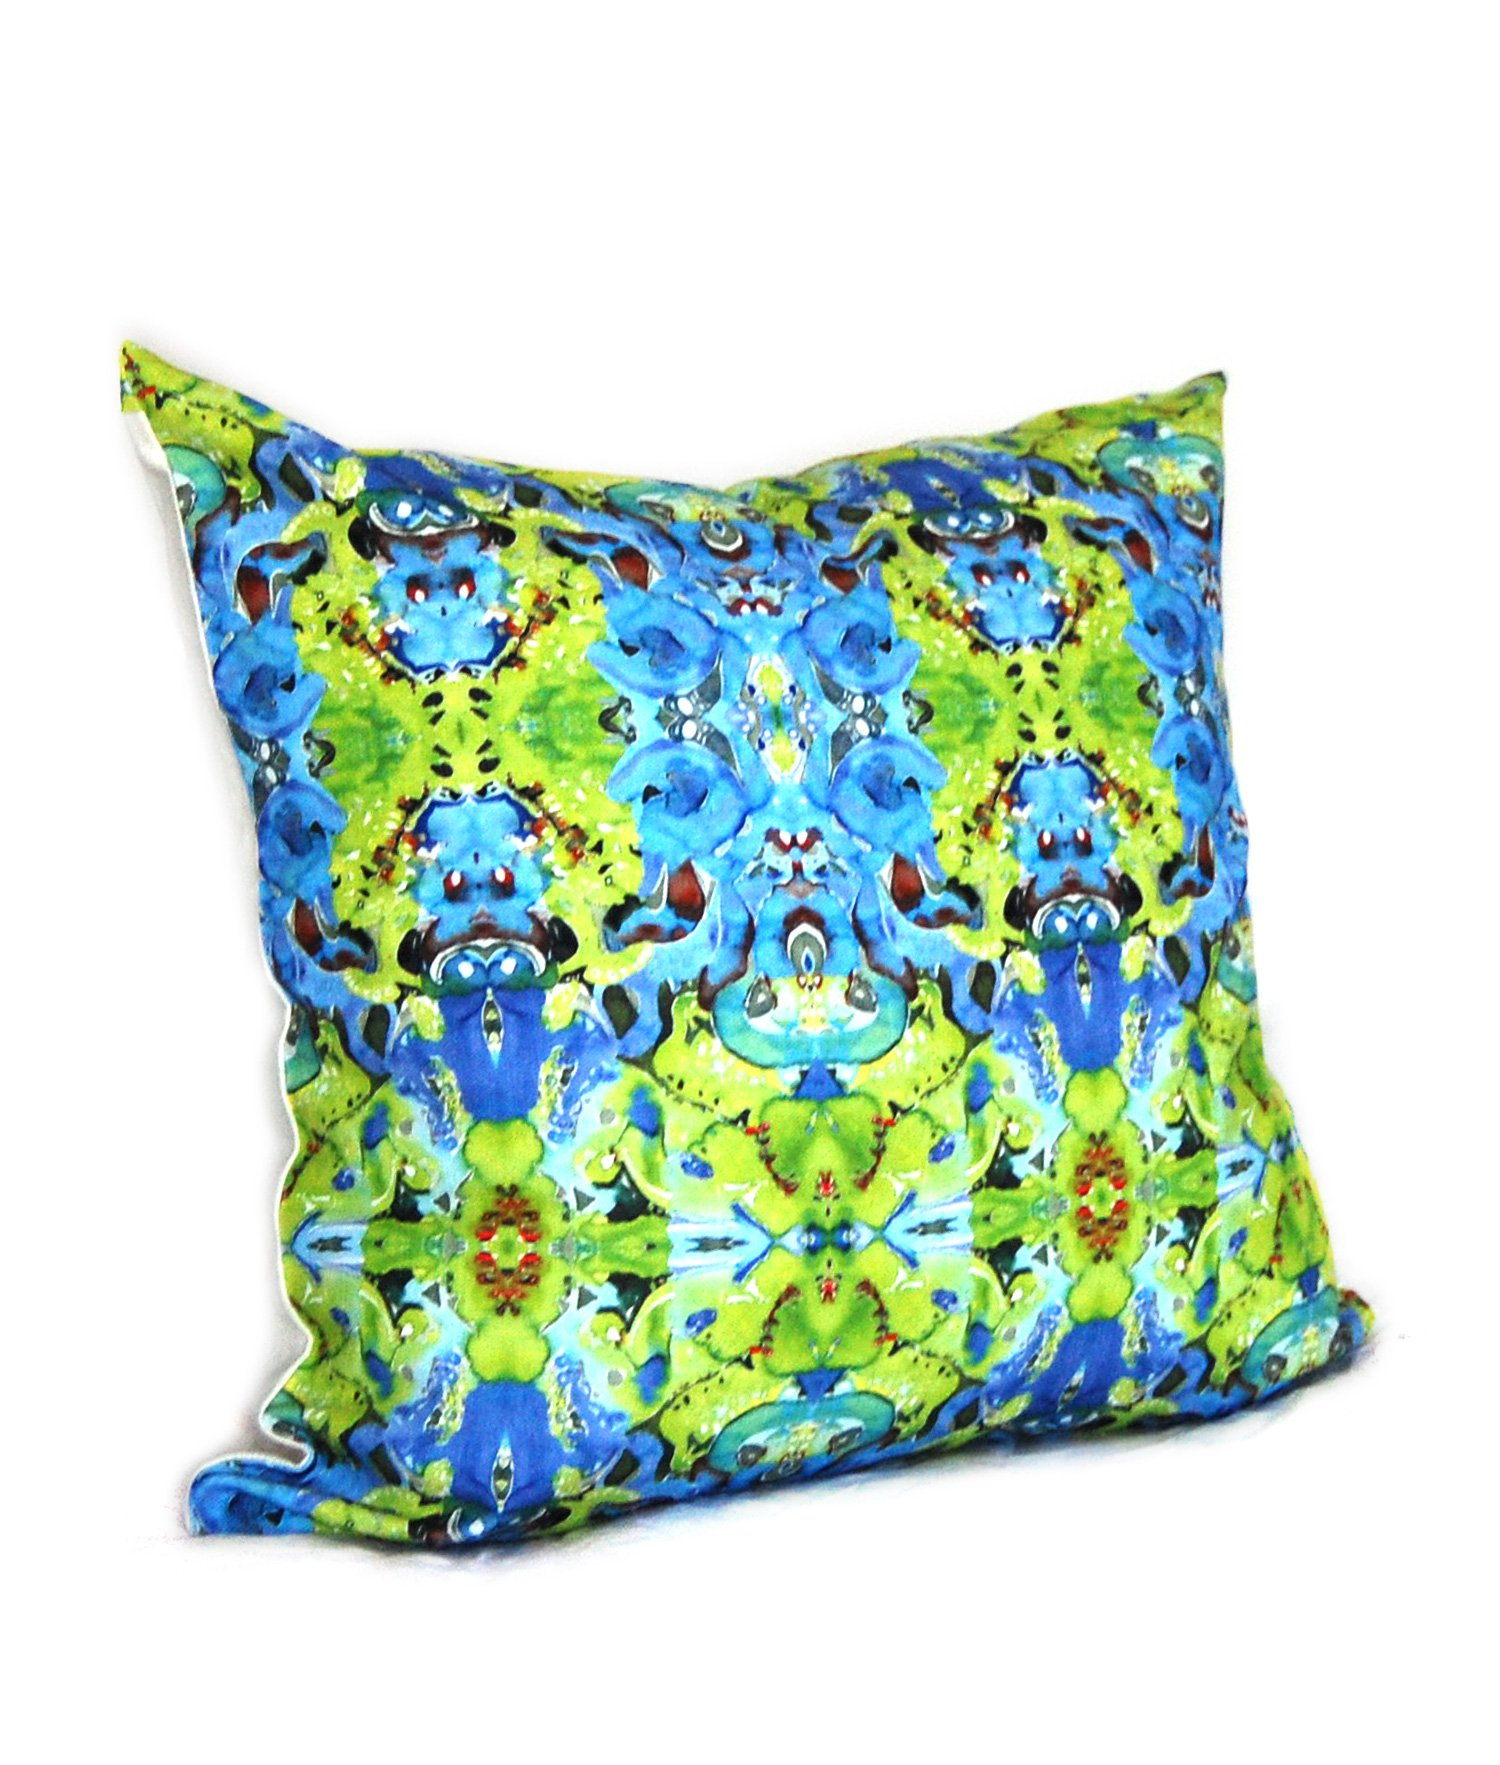 green and blue kaleidoscope abstract pattern throw pillow cover